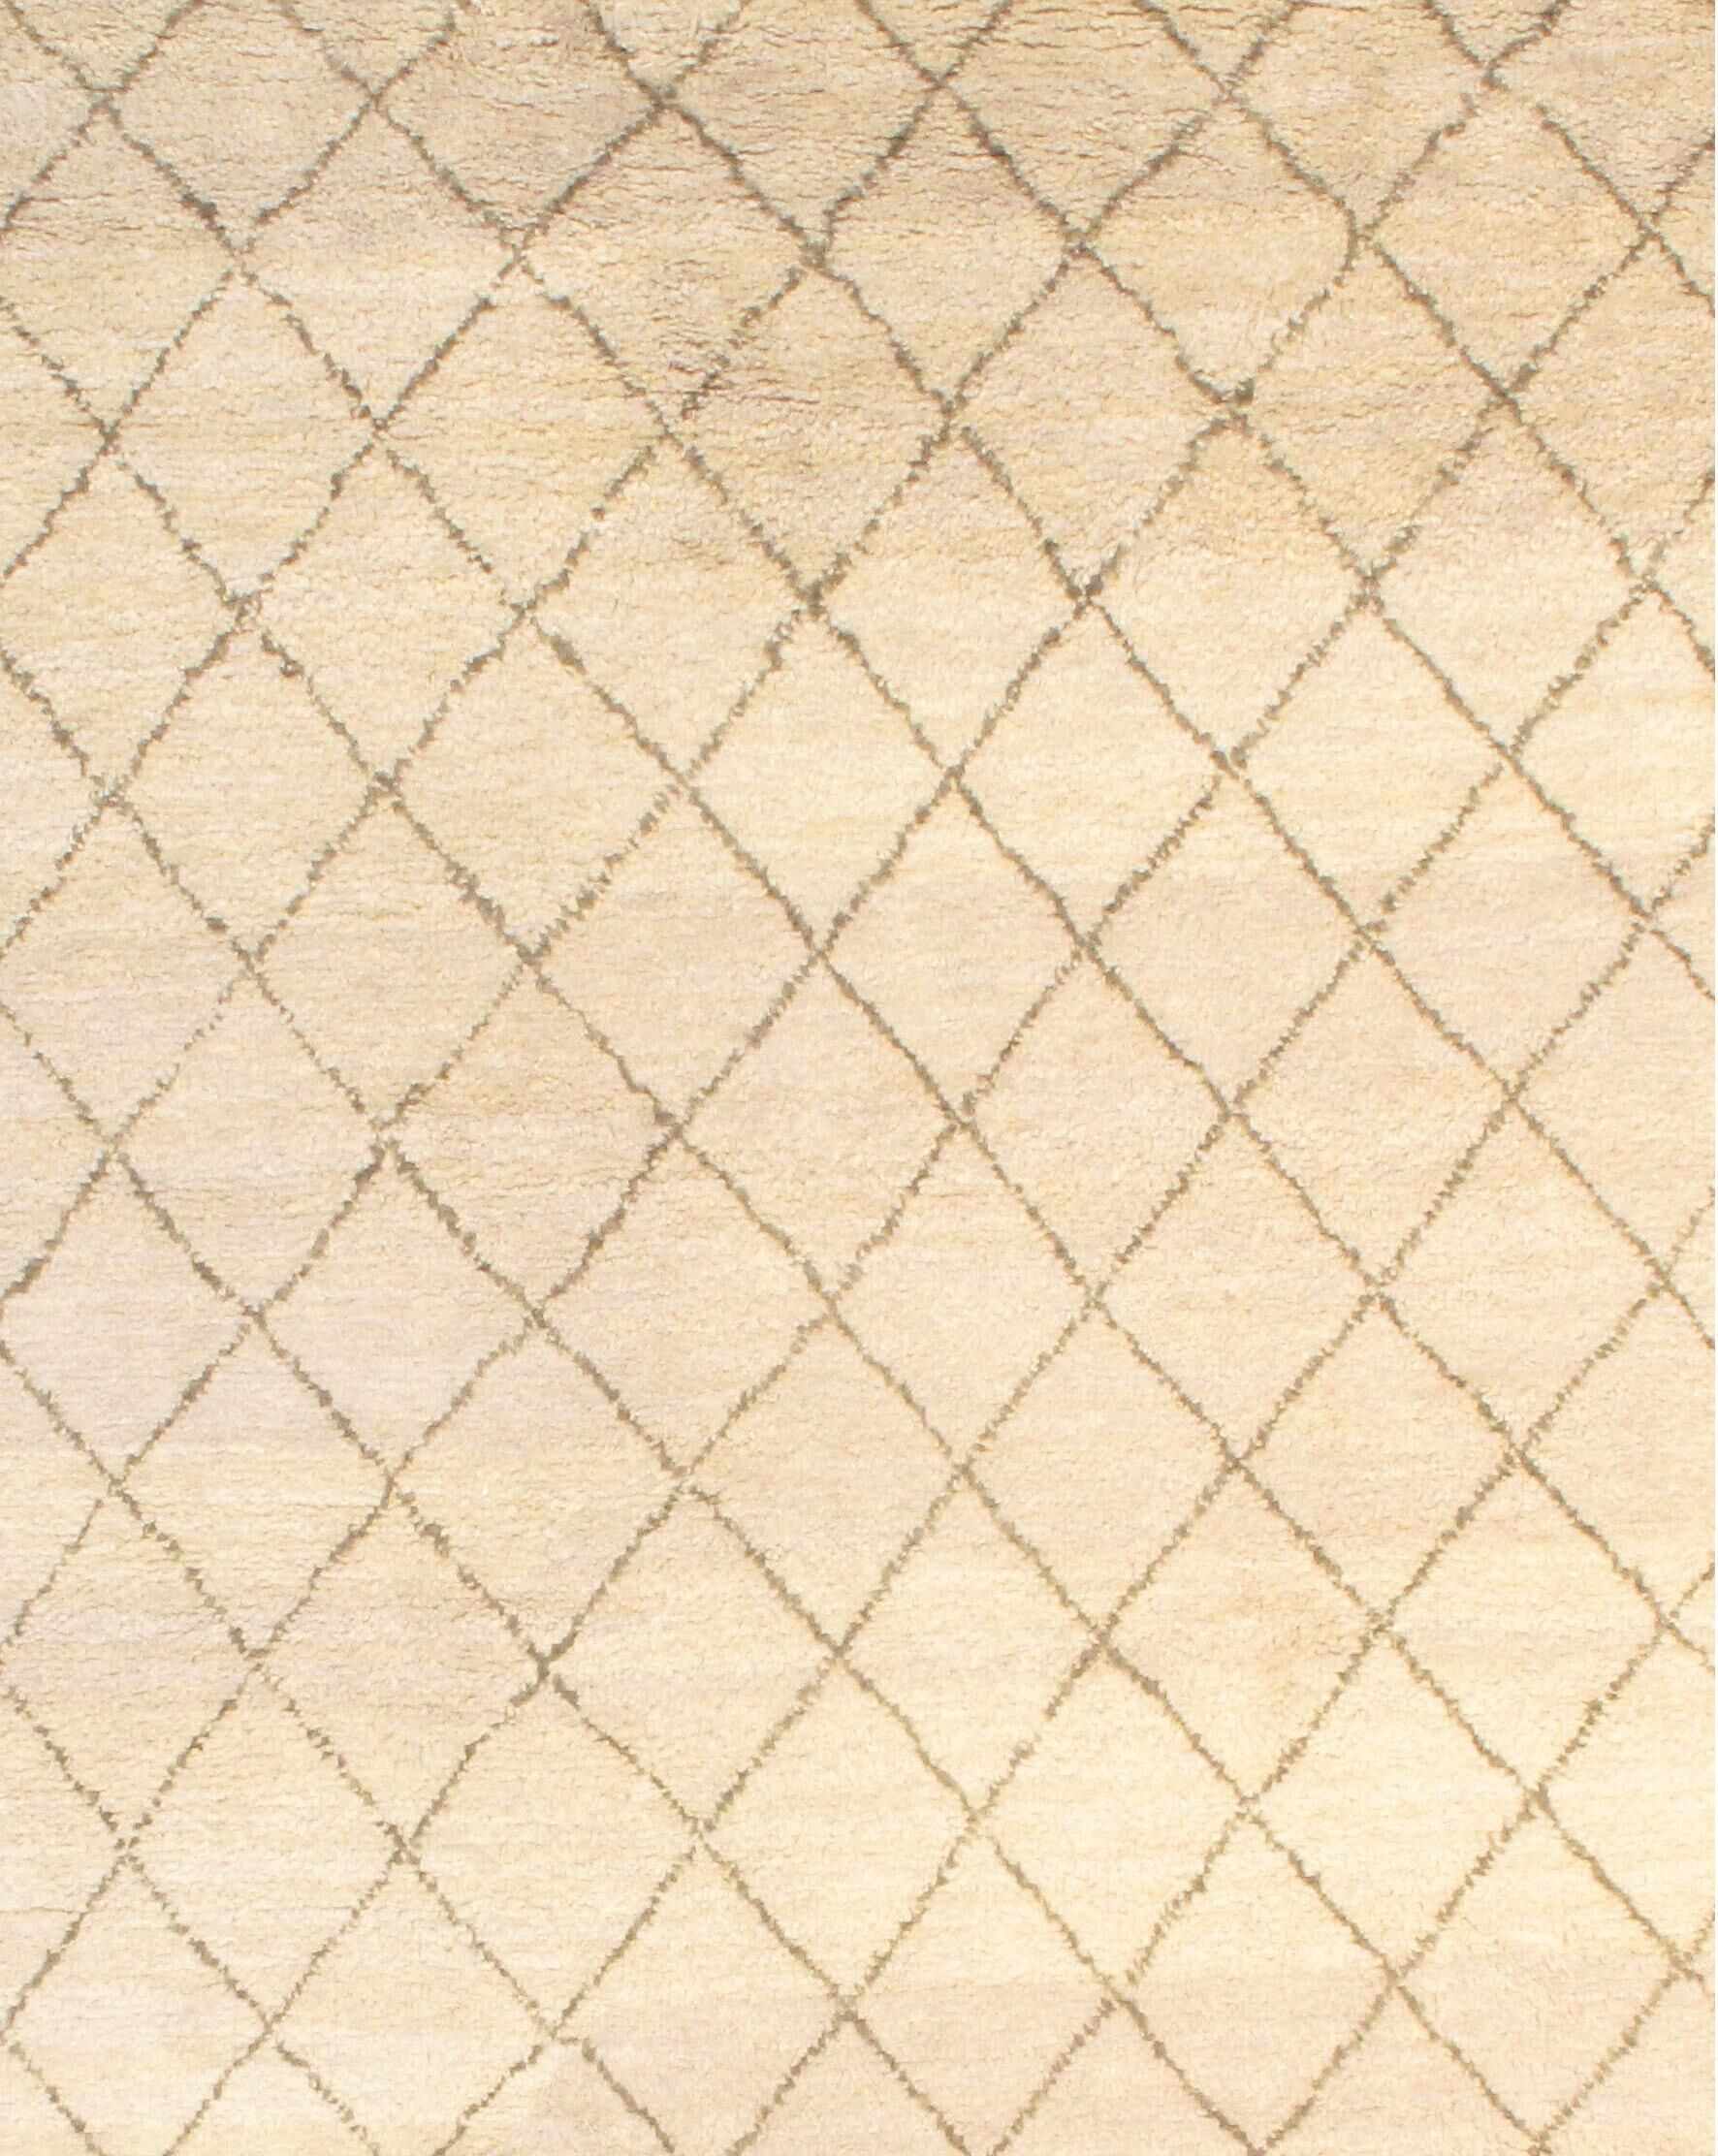 Moroccan Modern Hand-Knotted Wool Ivory Area Rug Rug Size: Rectangle 6'1